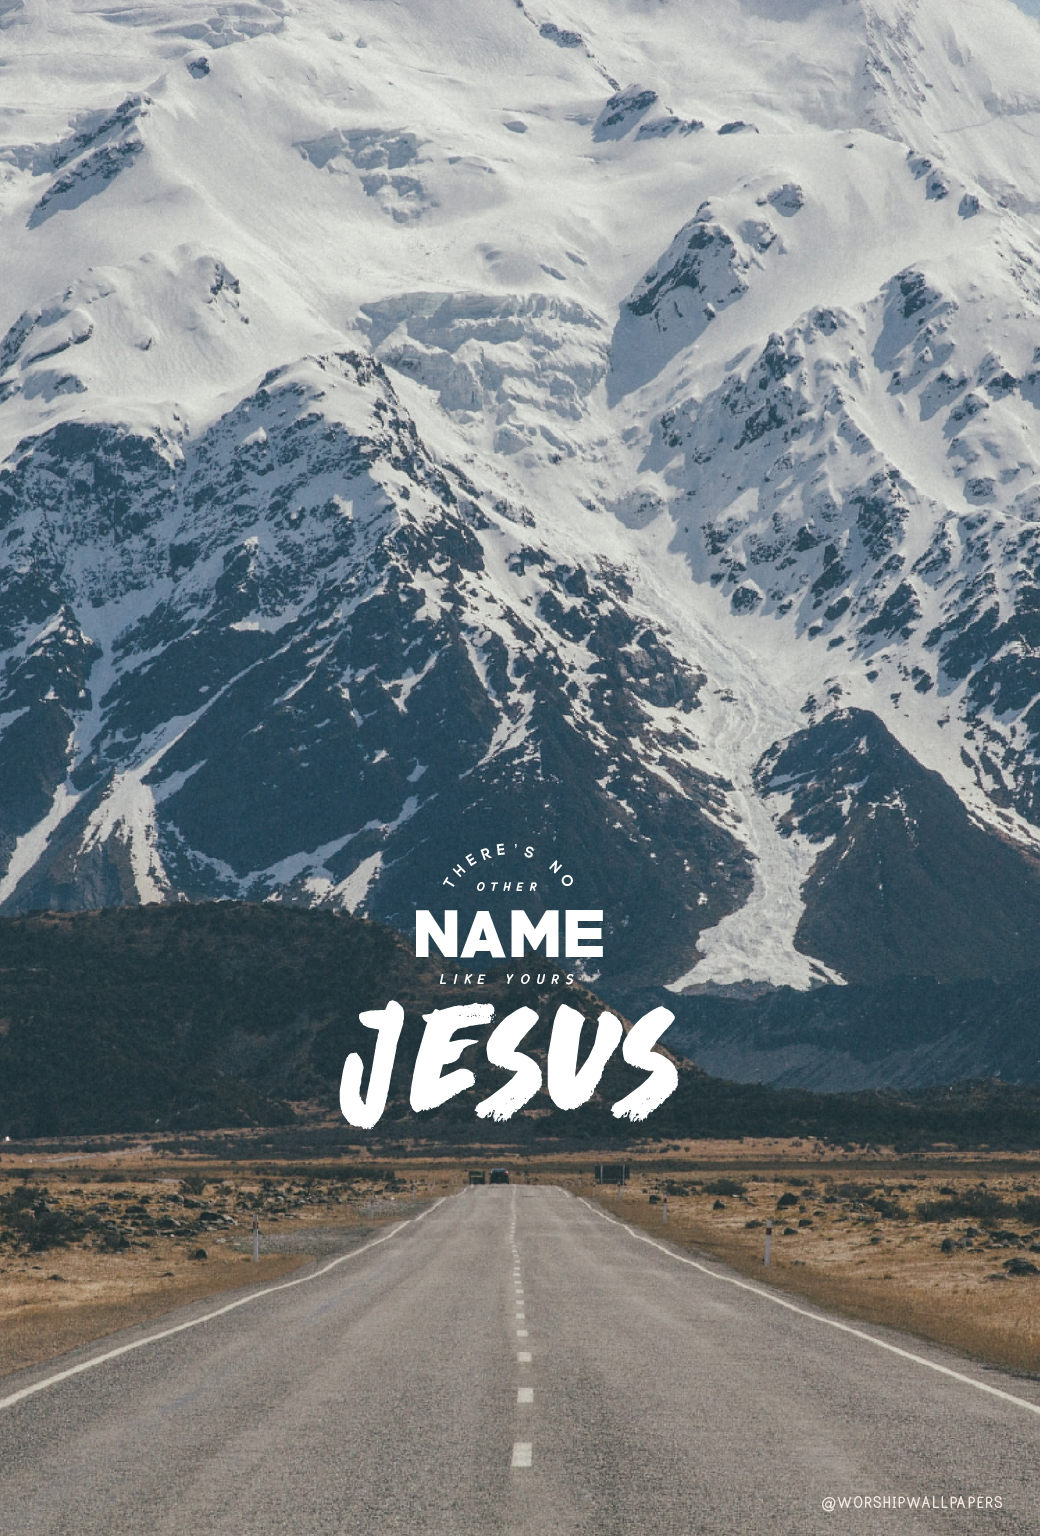 Inside Of Iphone X Wallpaper There S No Other Name Paul Amp Hannah Mcclure Worship